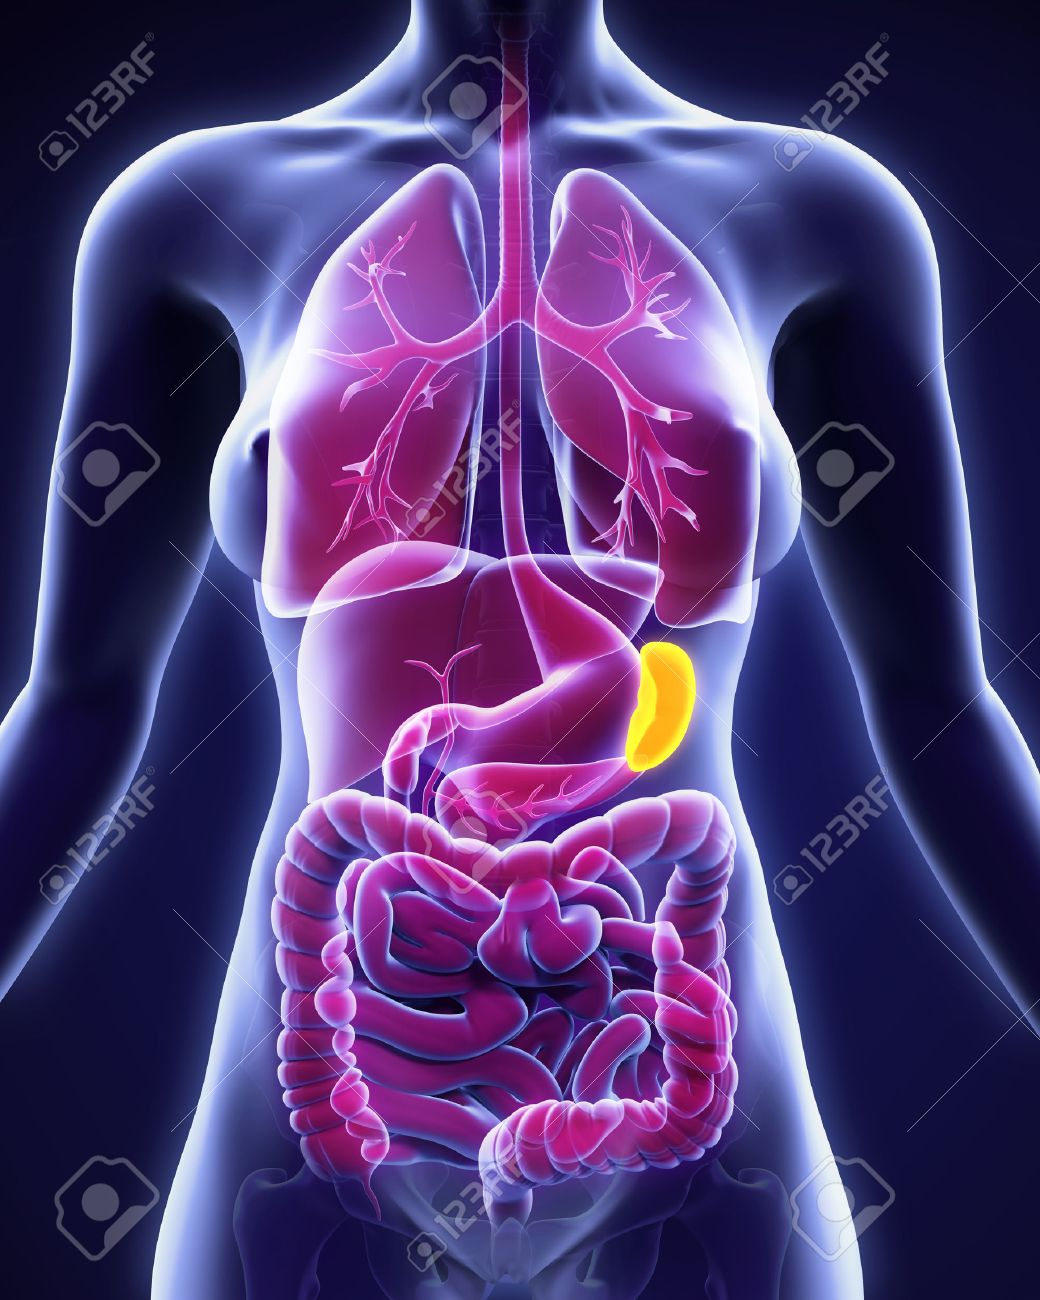 Human Spleen Anatomy Stock Photo, Picture And Royalty Free Image ...